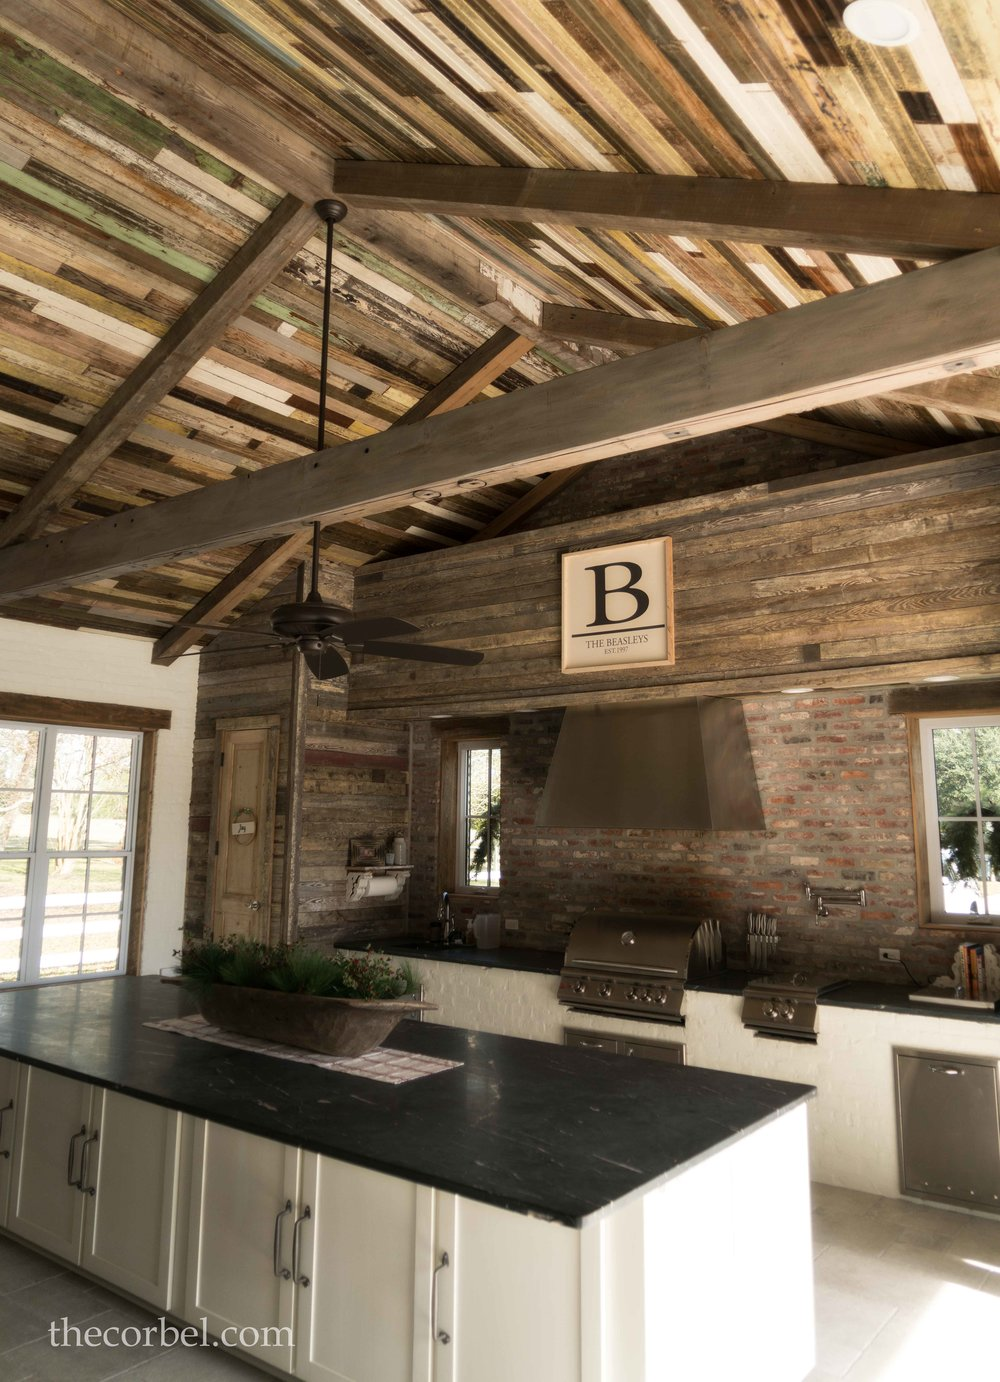 charlet bros outdoor kitchen.jpg